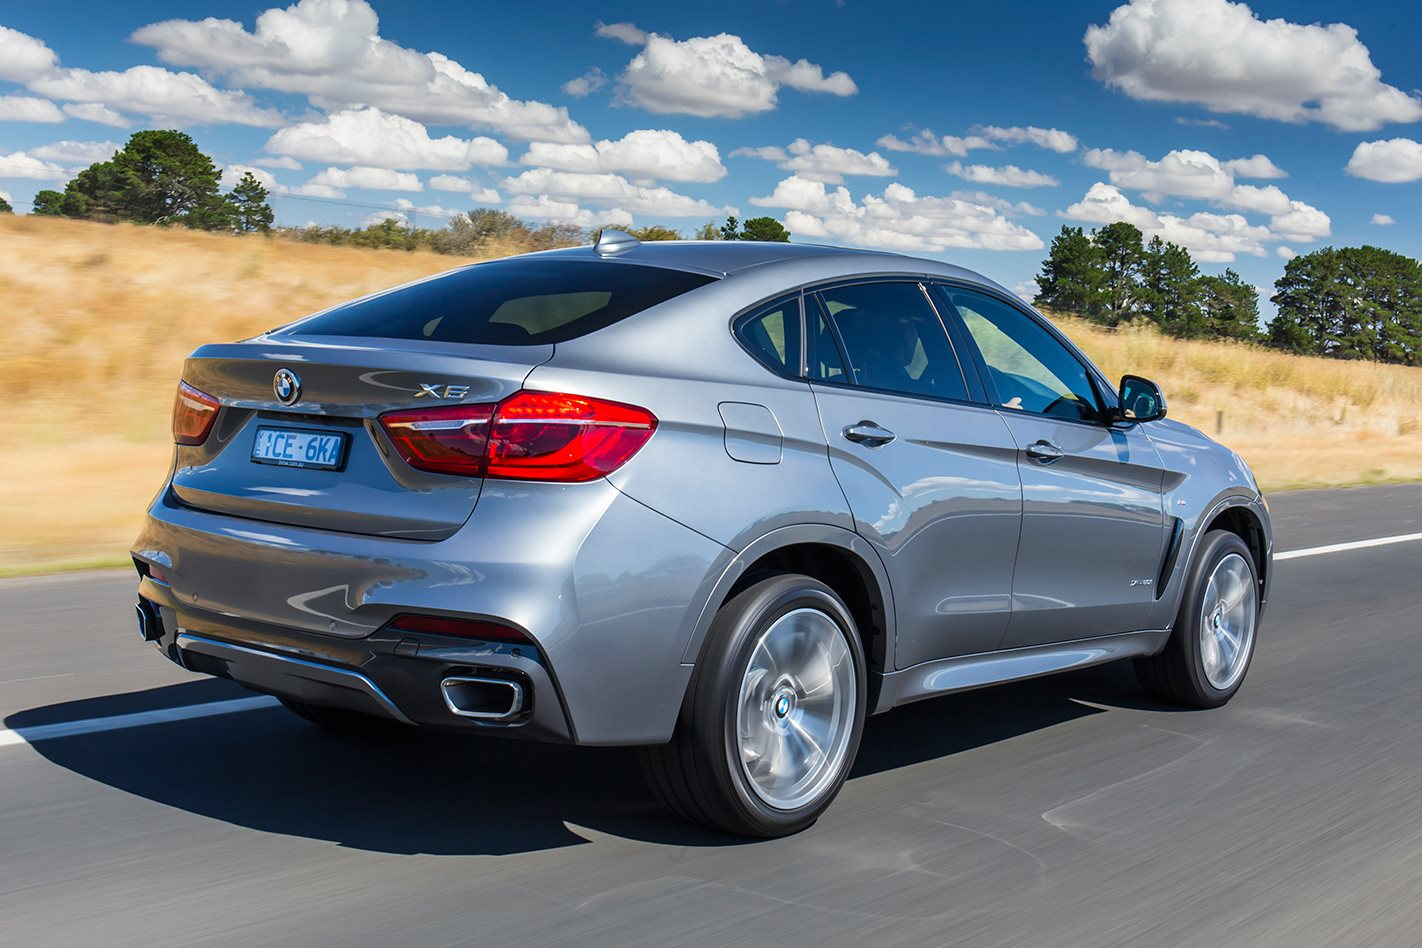 Bmw X6 2015 Review